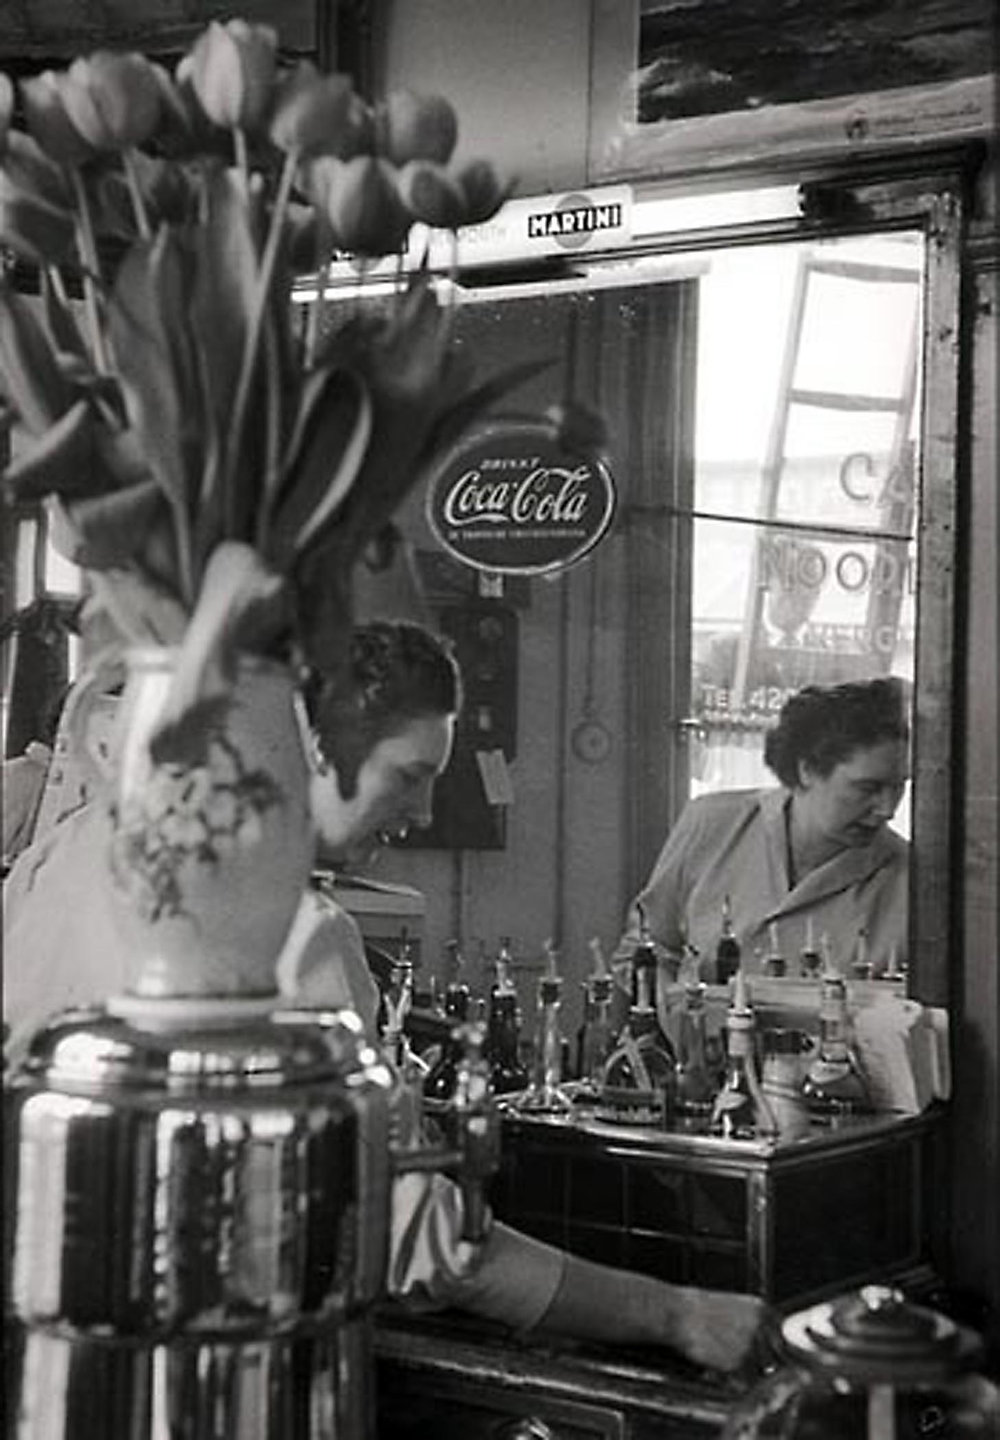 HANNON_tending_bar_(amsterdam)_1956_11x14_high.jpg